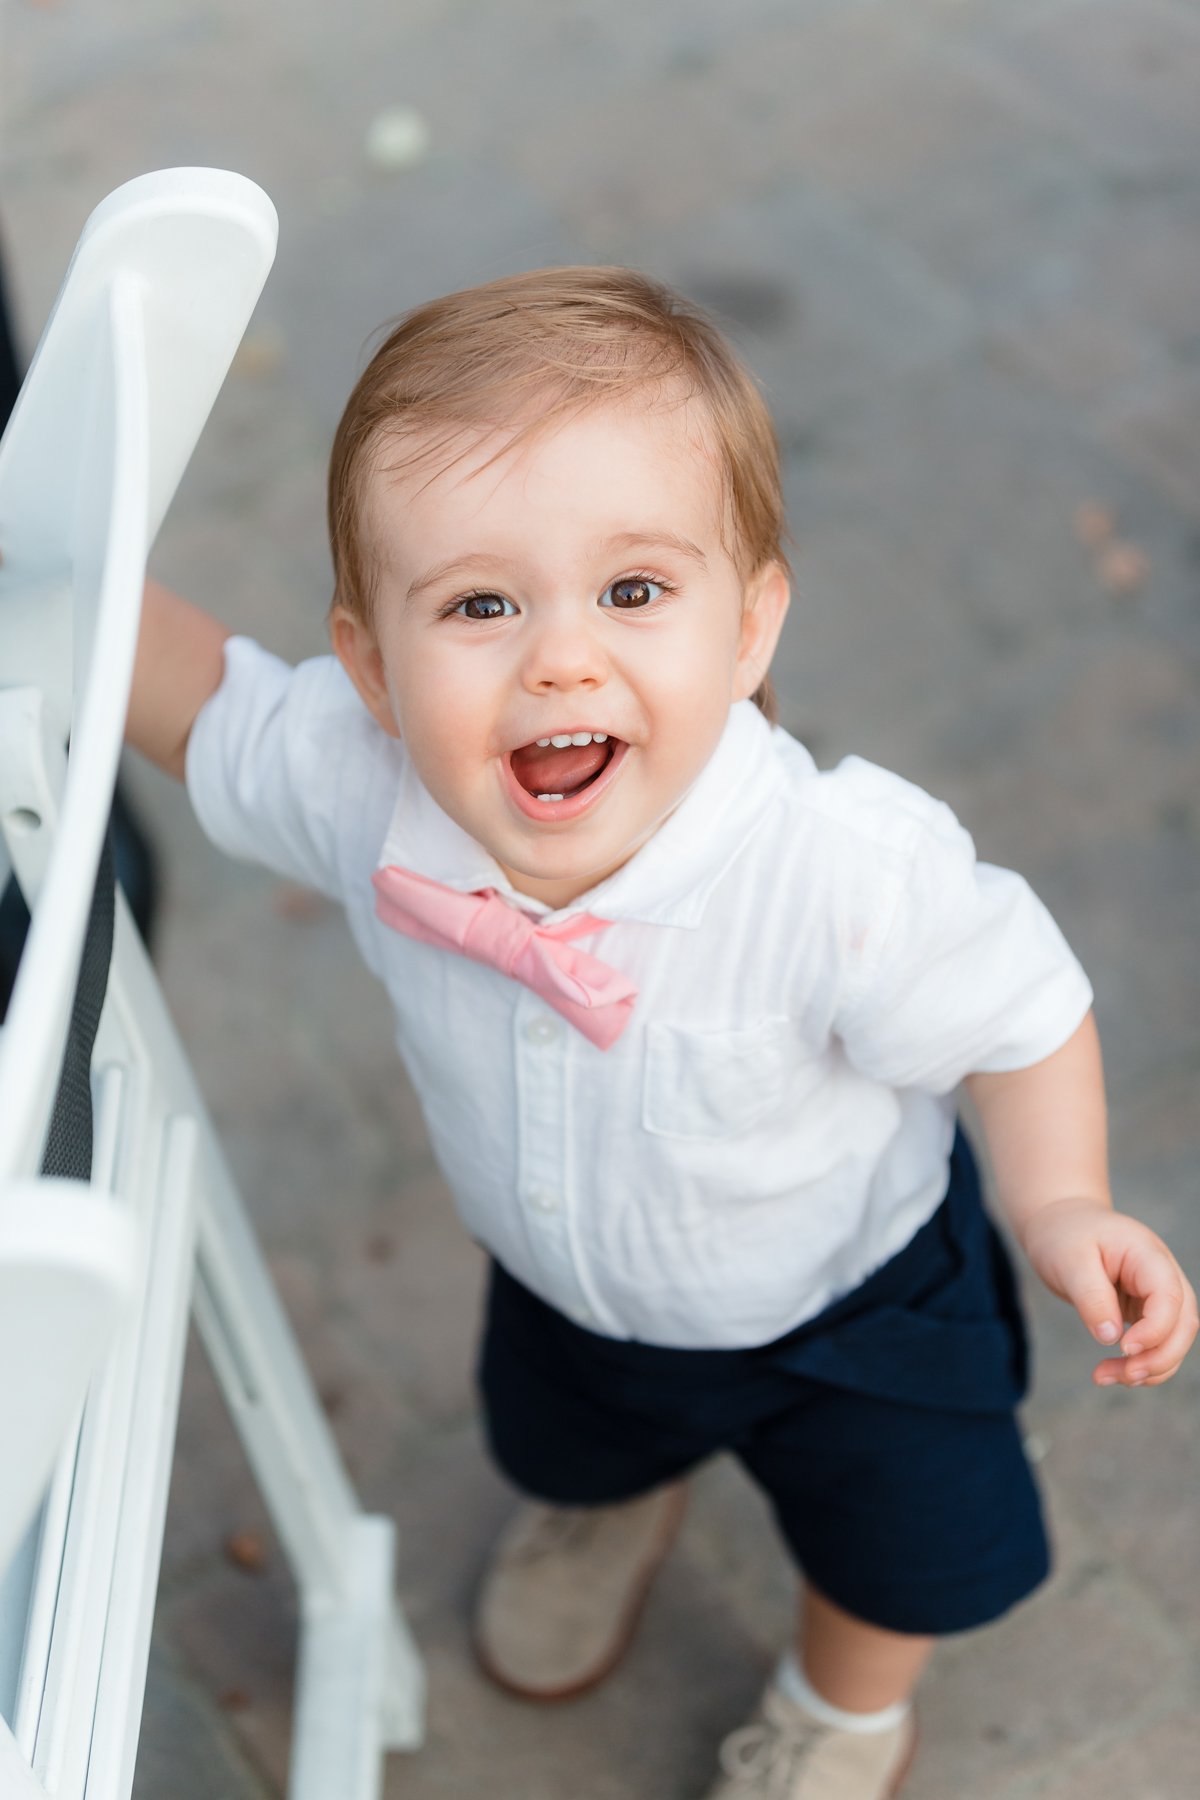 Kids are so fun to photograph at weddings!